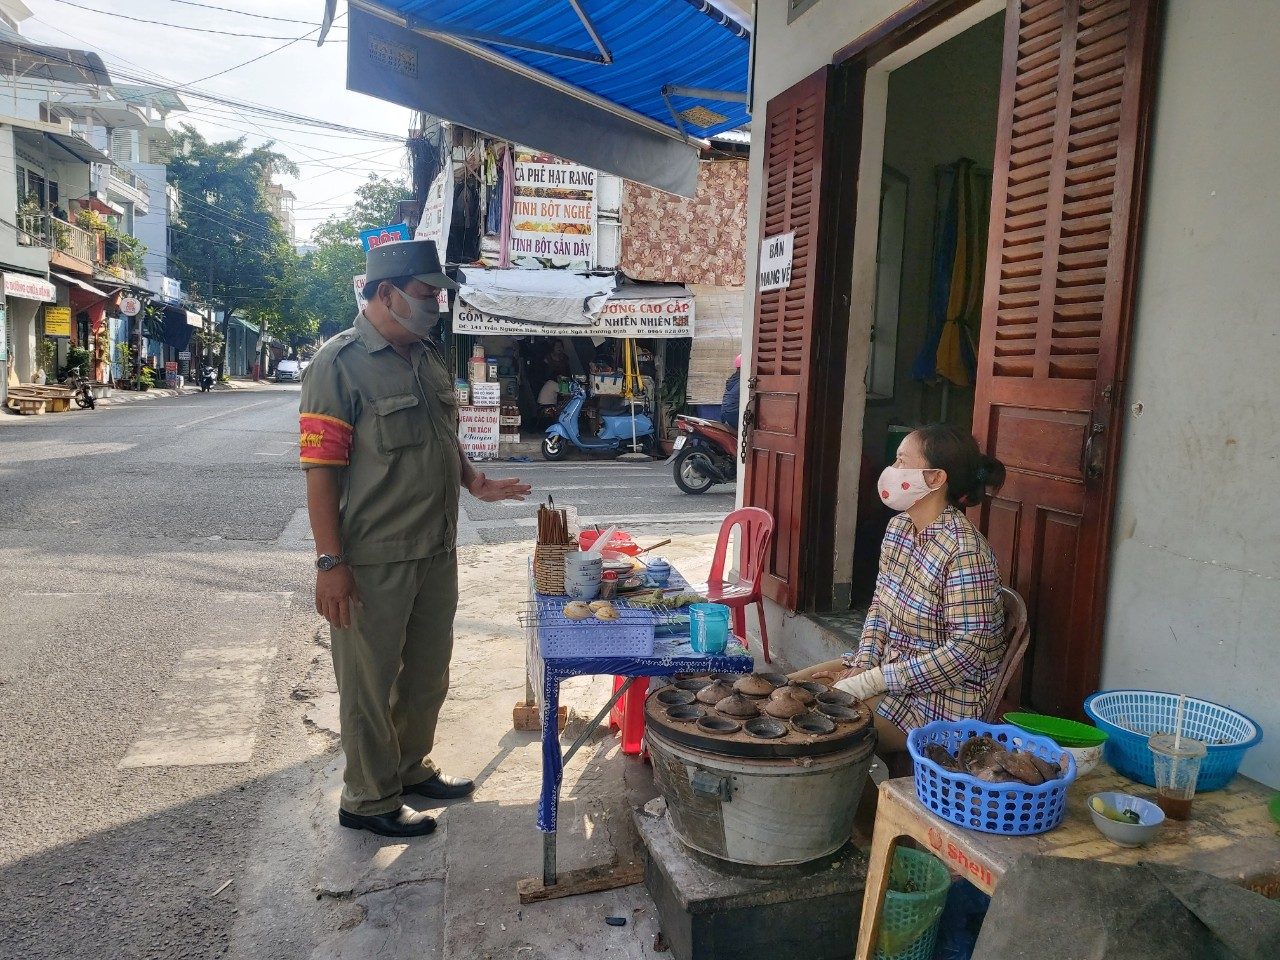 A functional staff member warning a food vendor about social distancing regulations